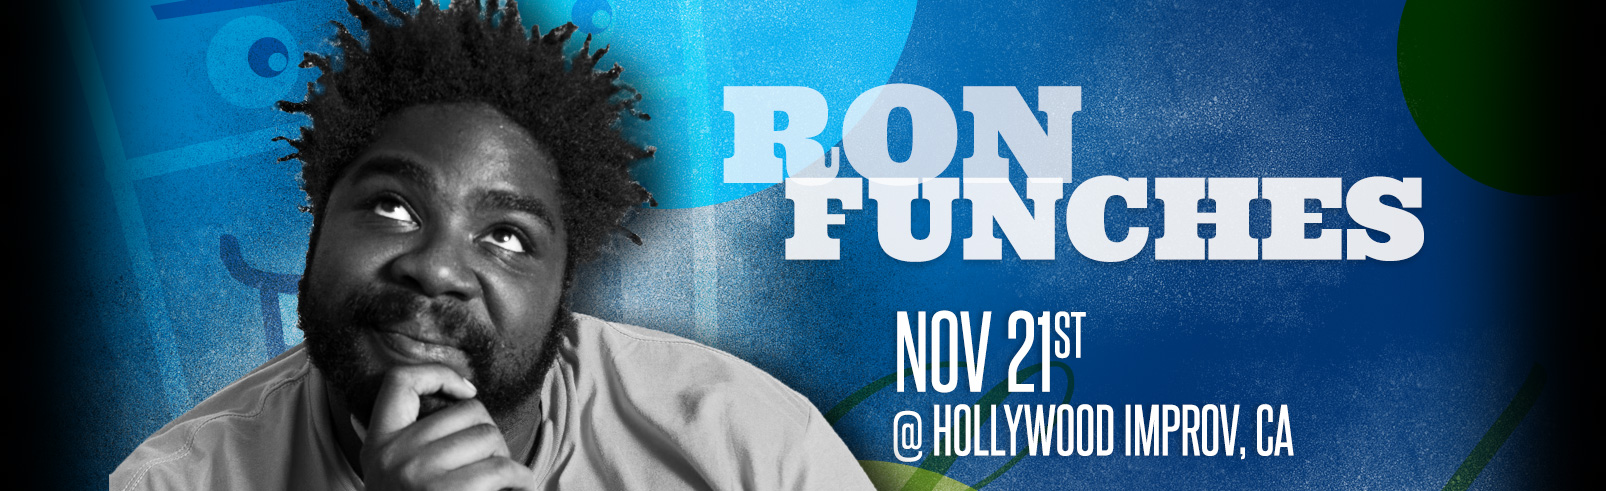 Ron Funches @ Hollywood Improv